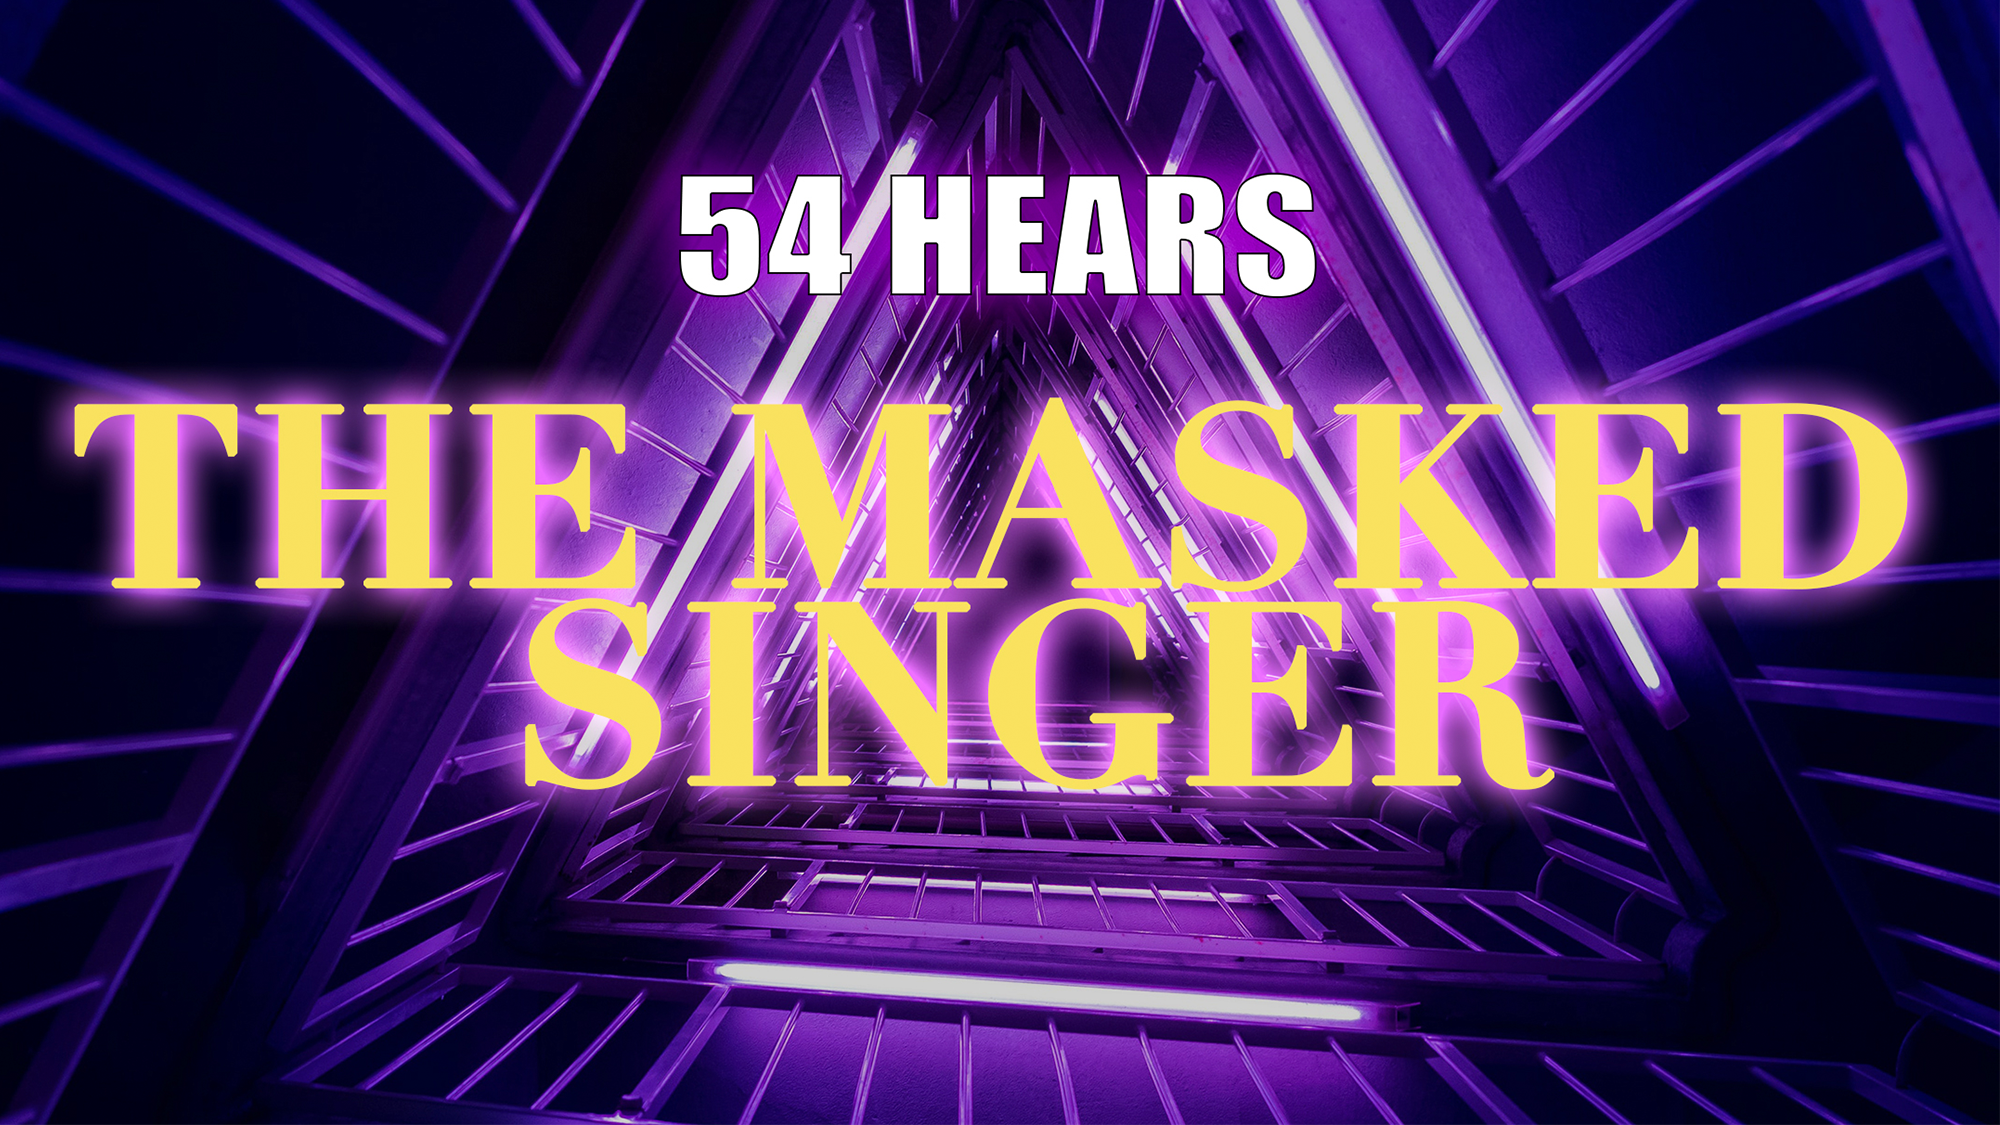 54 Hears the Masked Singer